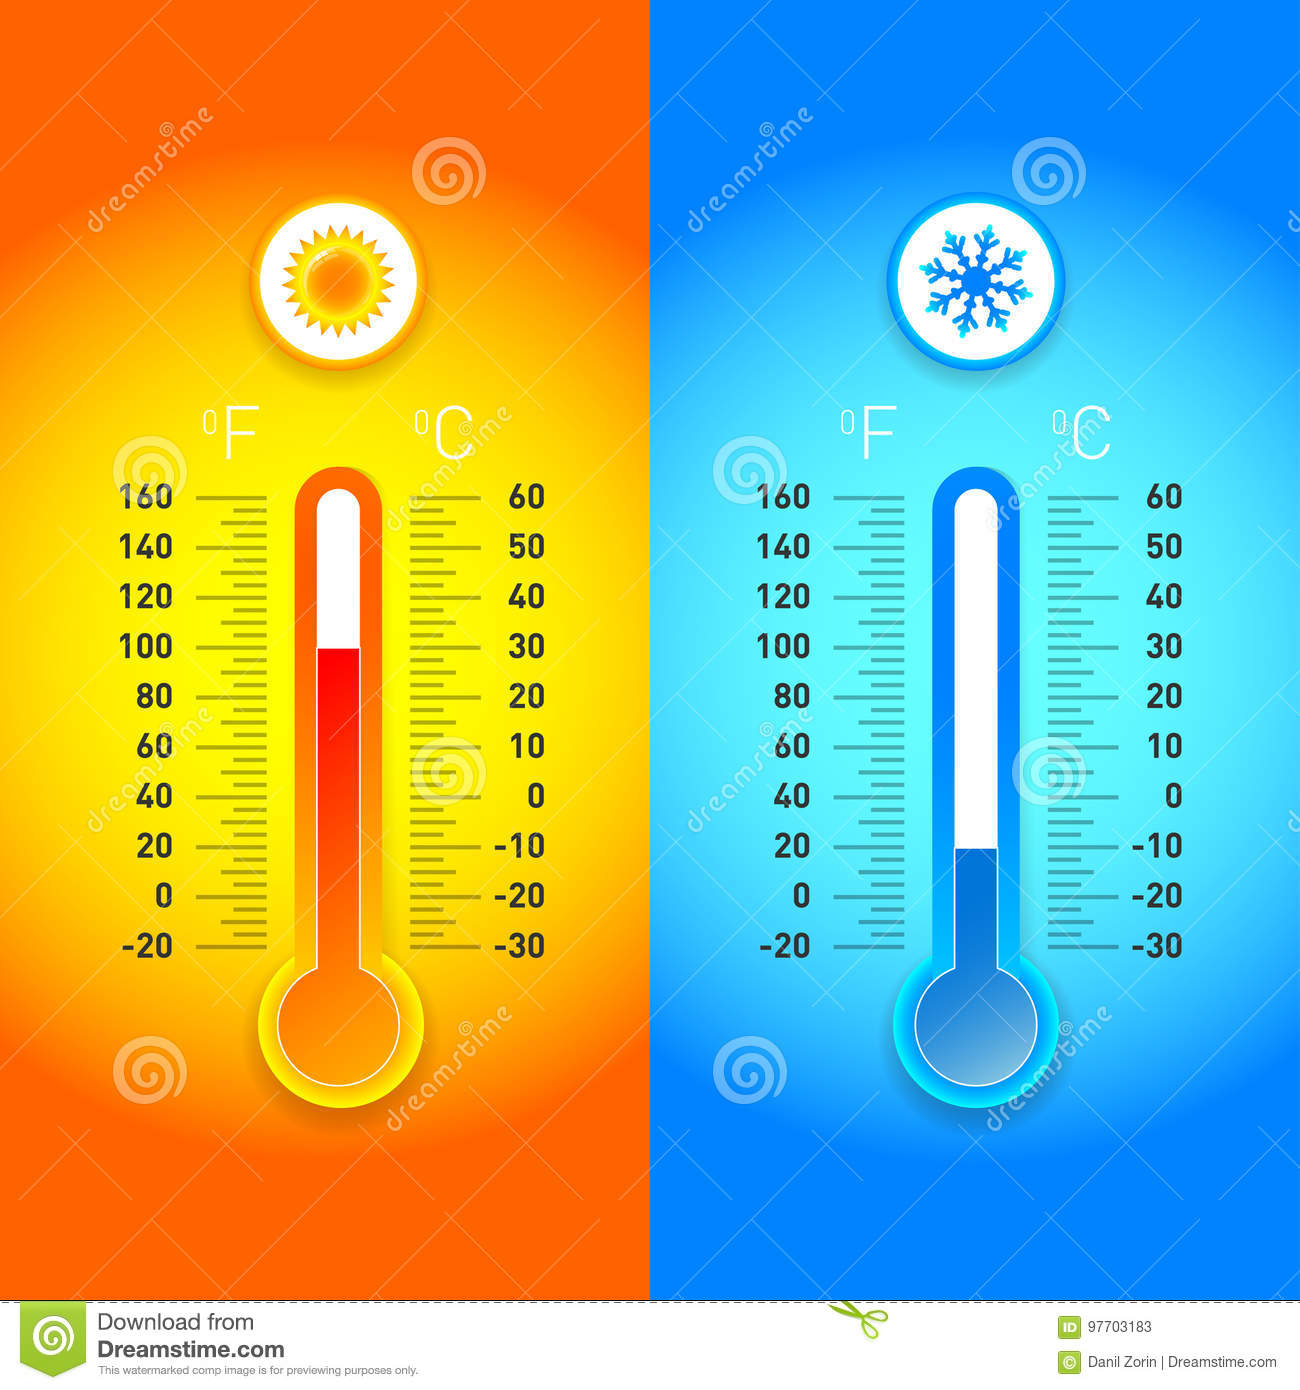 Celsius And Fahrenheit Meteorology Thermometers Measuring ...